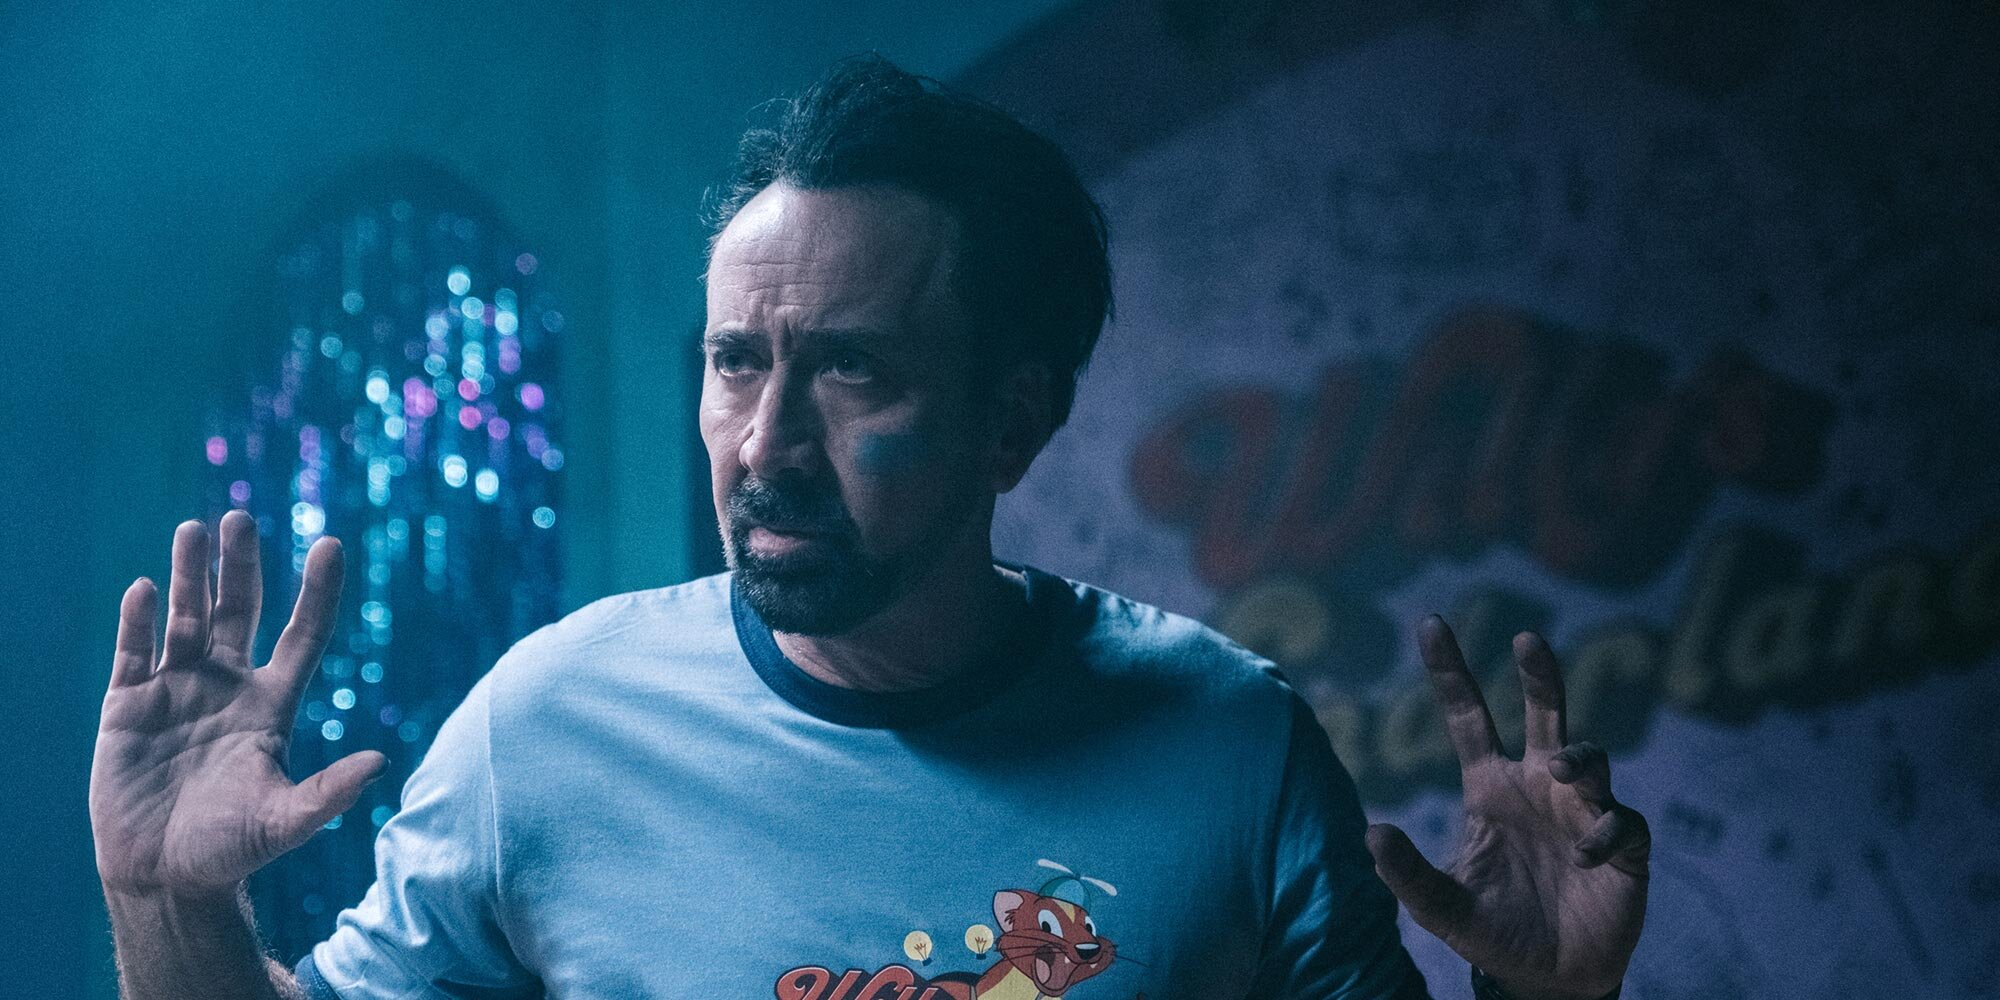 'Nic Cage is into reptiles...': The insane, behind-the-scenes story of 'Willy's Wonderland'